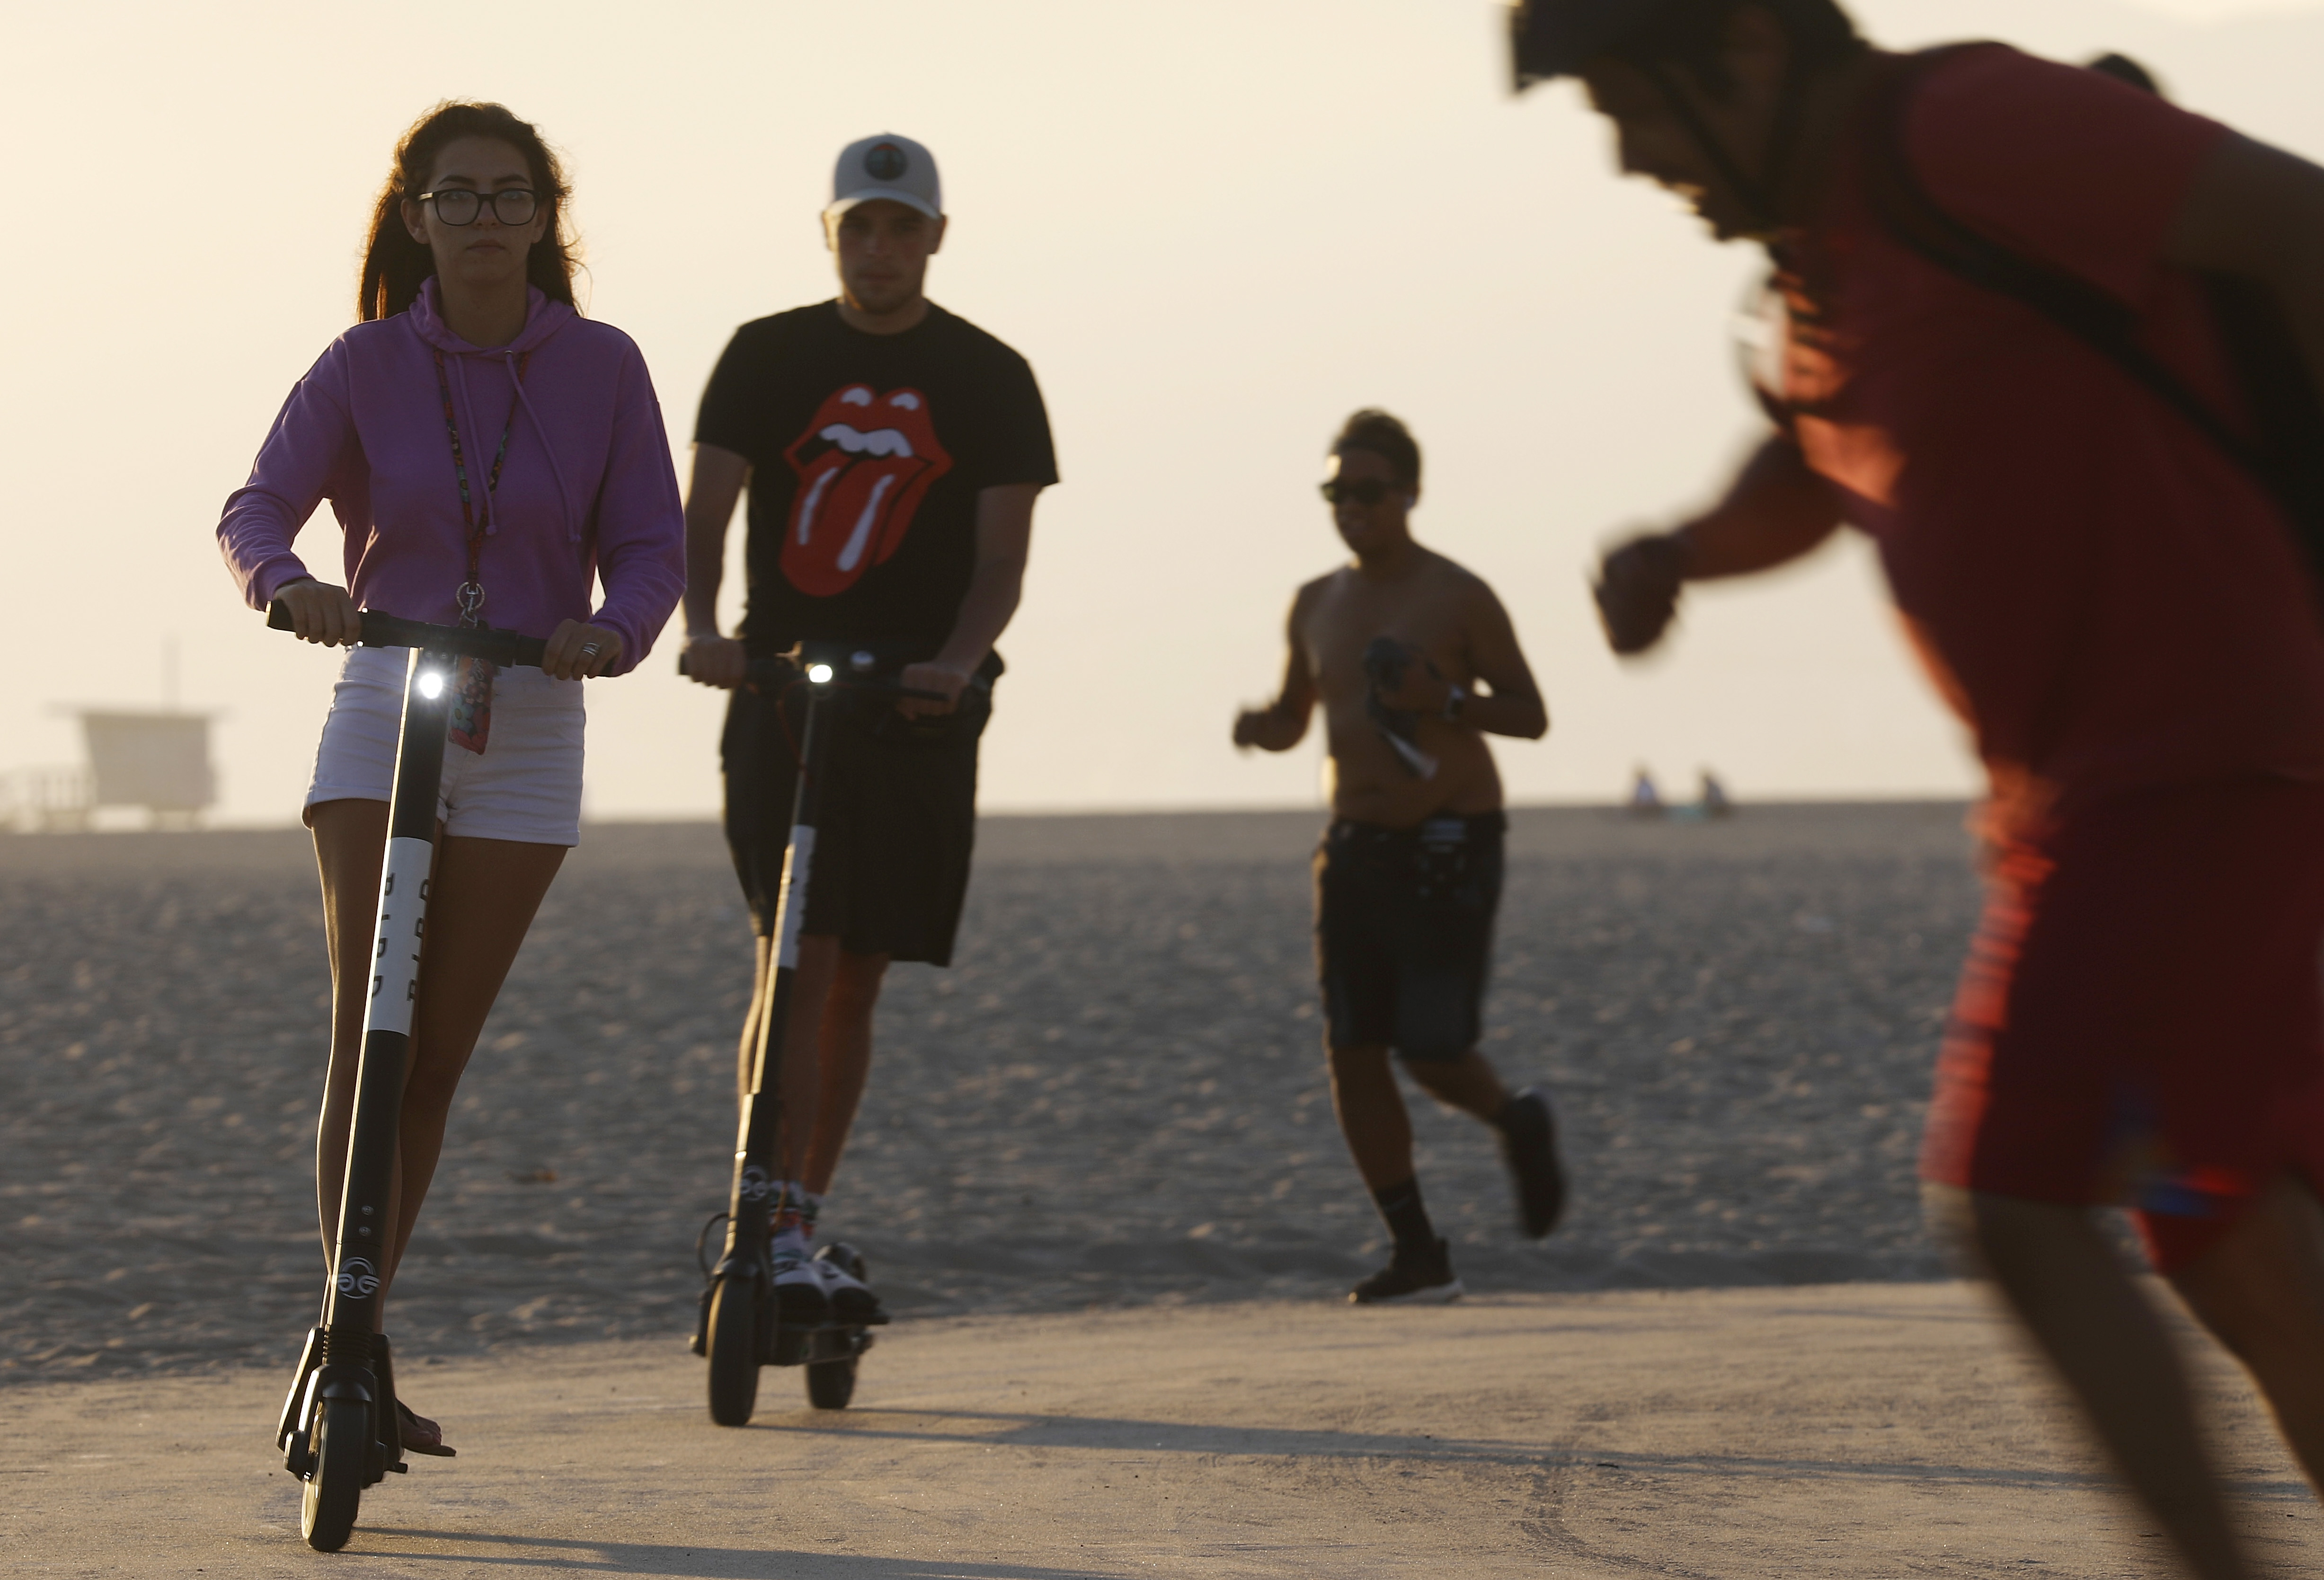 People ride Bird shared dockless electric scooters along Venice Beach on August 13, 2018 in Los Angeles, California. Shared e-scooter startups Bird and Lime have rapidly expanded in the city.